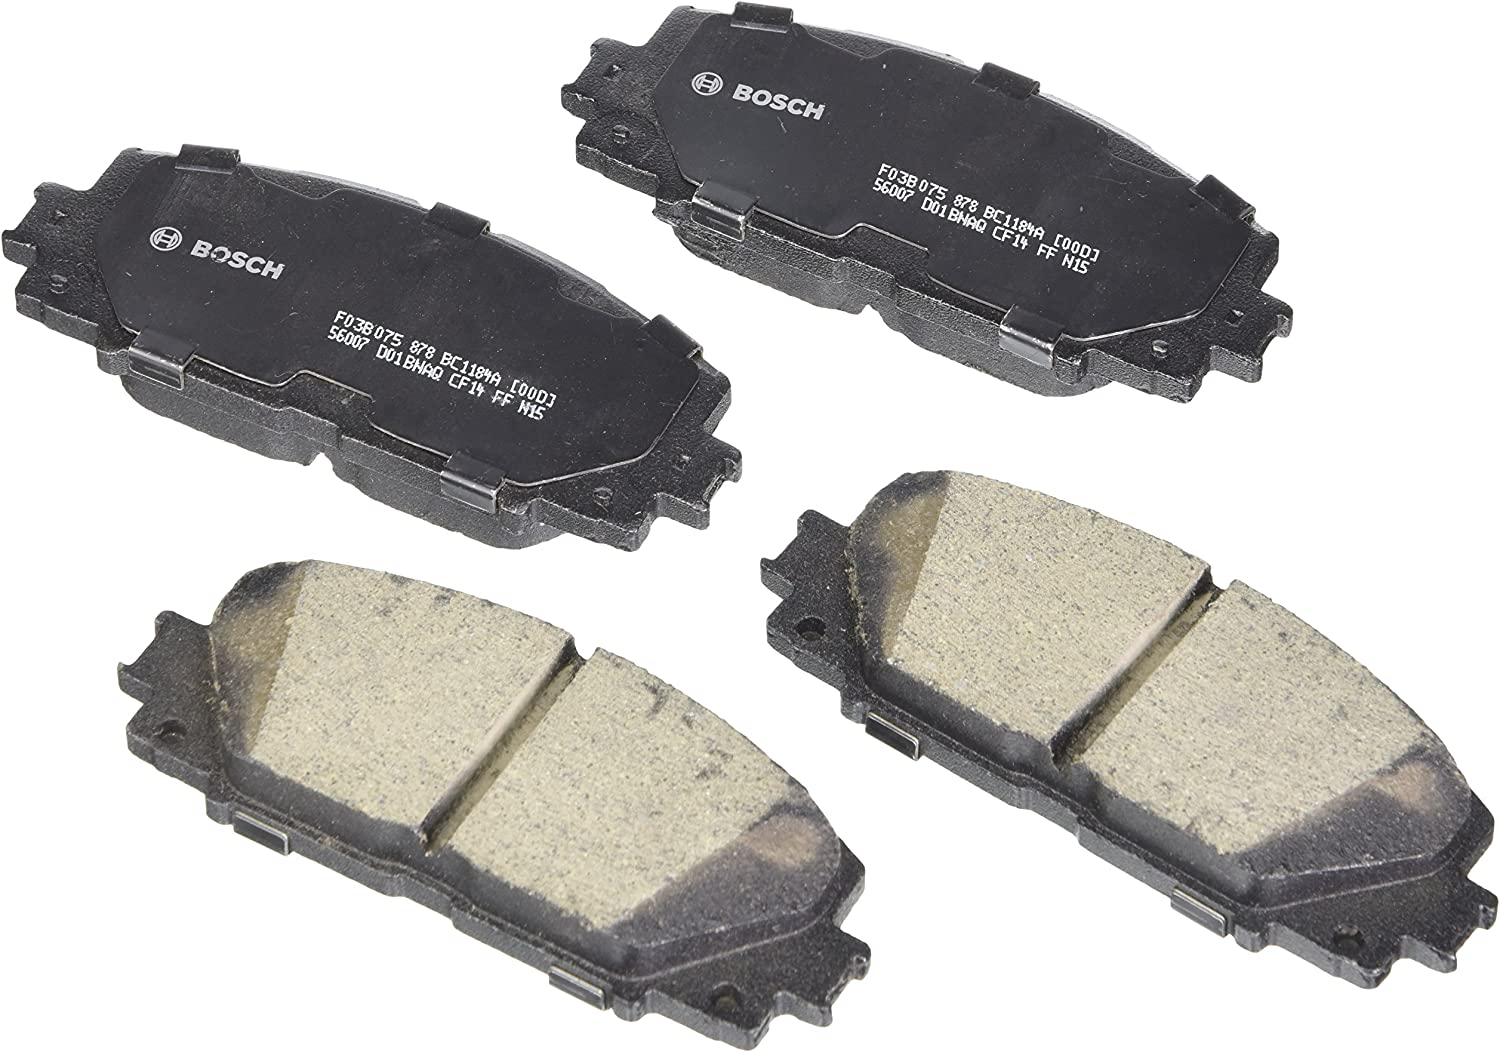 xB Matrix REAR Brake pad for CT 200h Prius CERAMIC Vibe tC Corolla